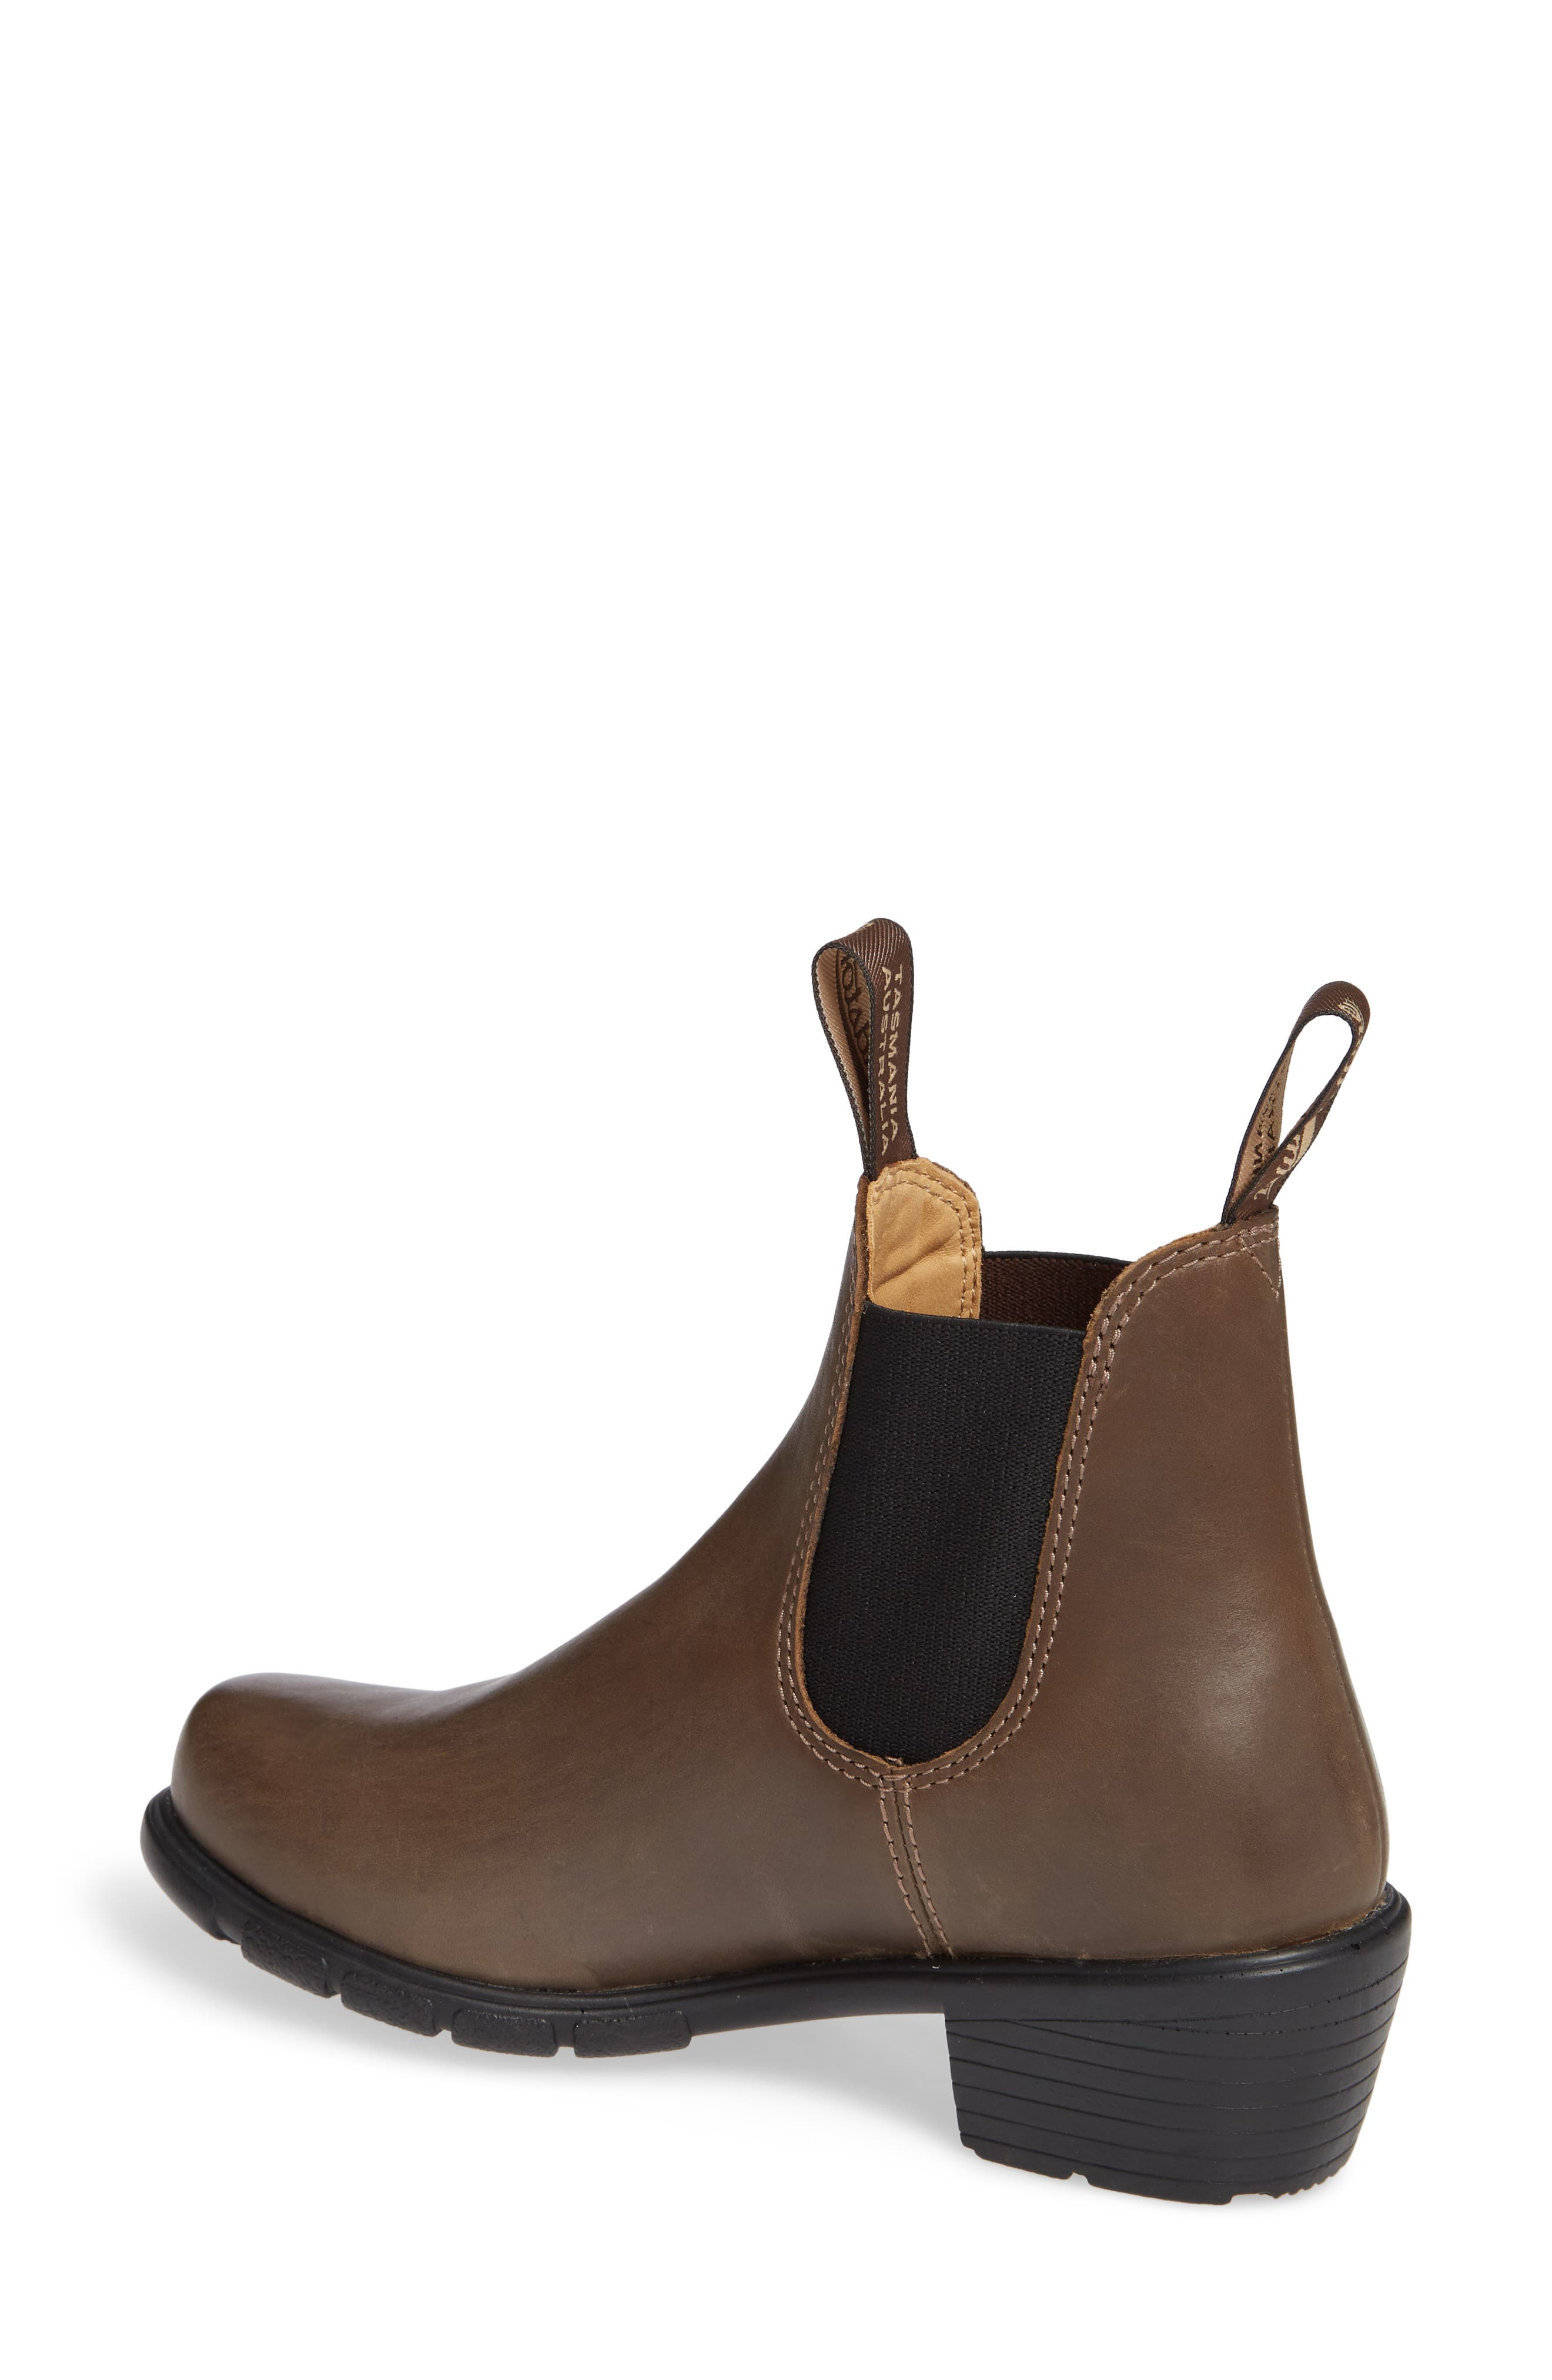 1671 Chelsea Boot,                             Alternate thumbnail 2, color,                             ANTIQUE TAUPE LEATHER